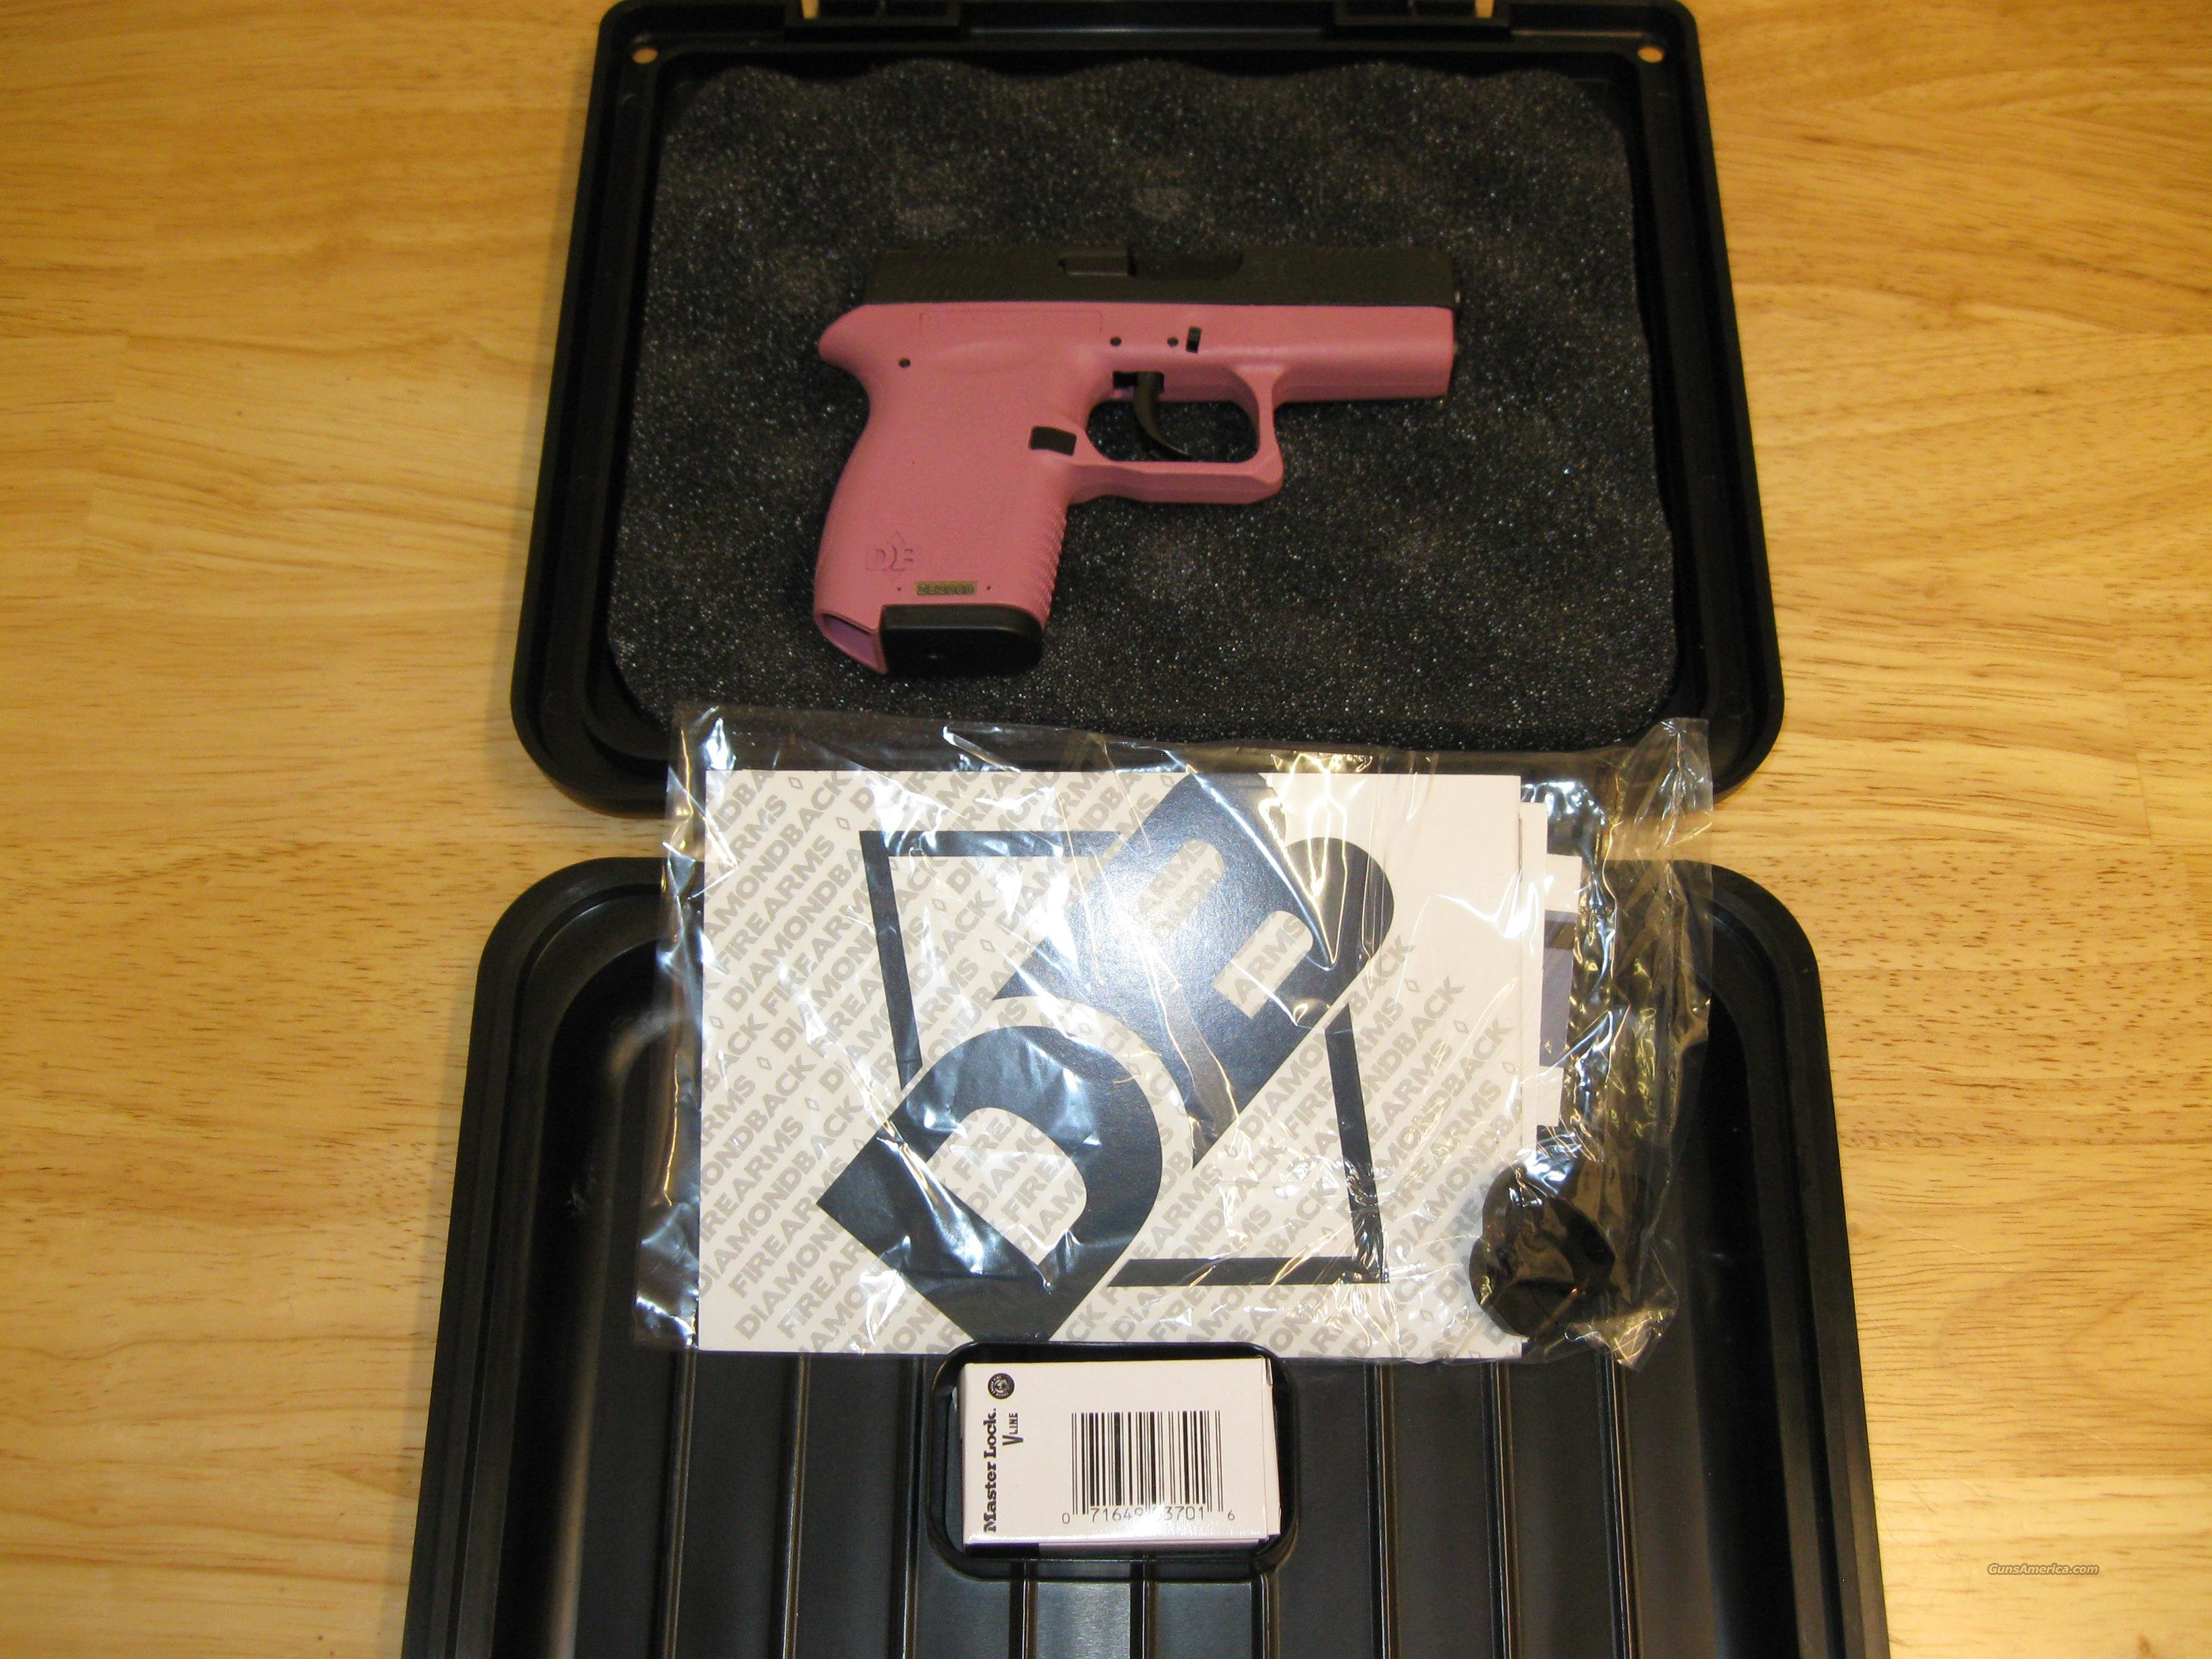 Diamondback DB380 Pistol DB380HP, 380 ACP, 2.8 in, Pink Grip, Black/Pink Finish, 6 Rd  Guns > Pistols > D Misc Pistols